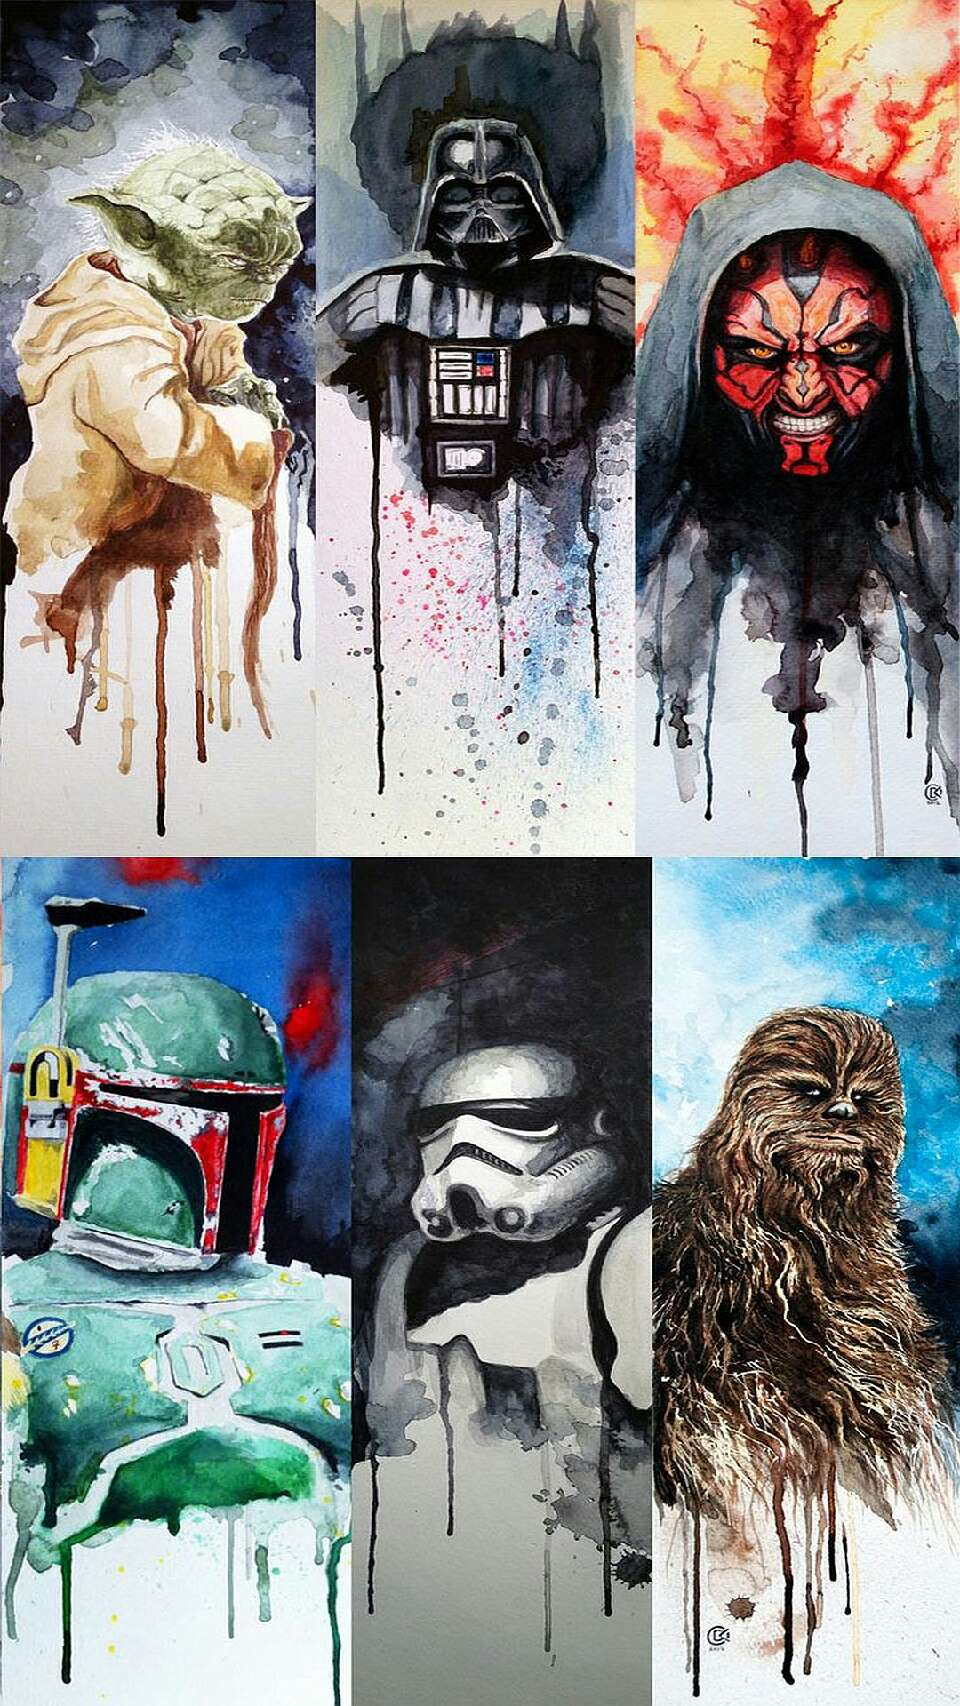 For the (awesome) Star Wars nerds, here's a pretty watercolor that suits your needs